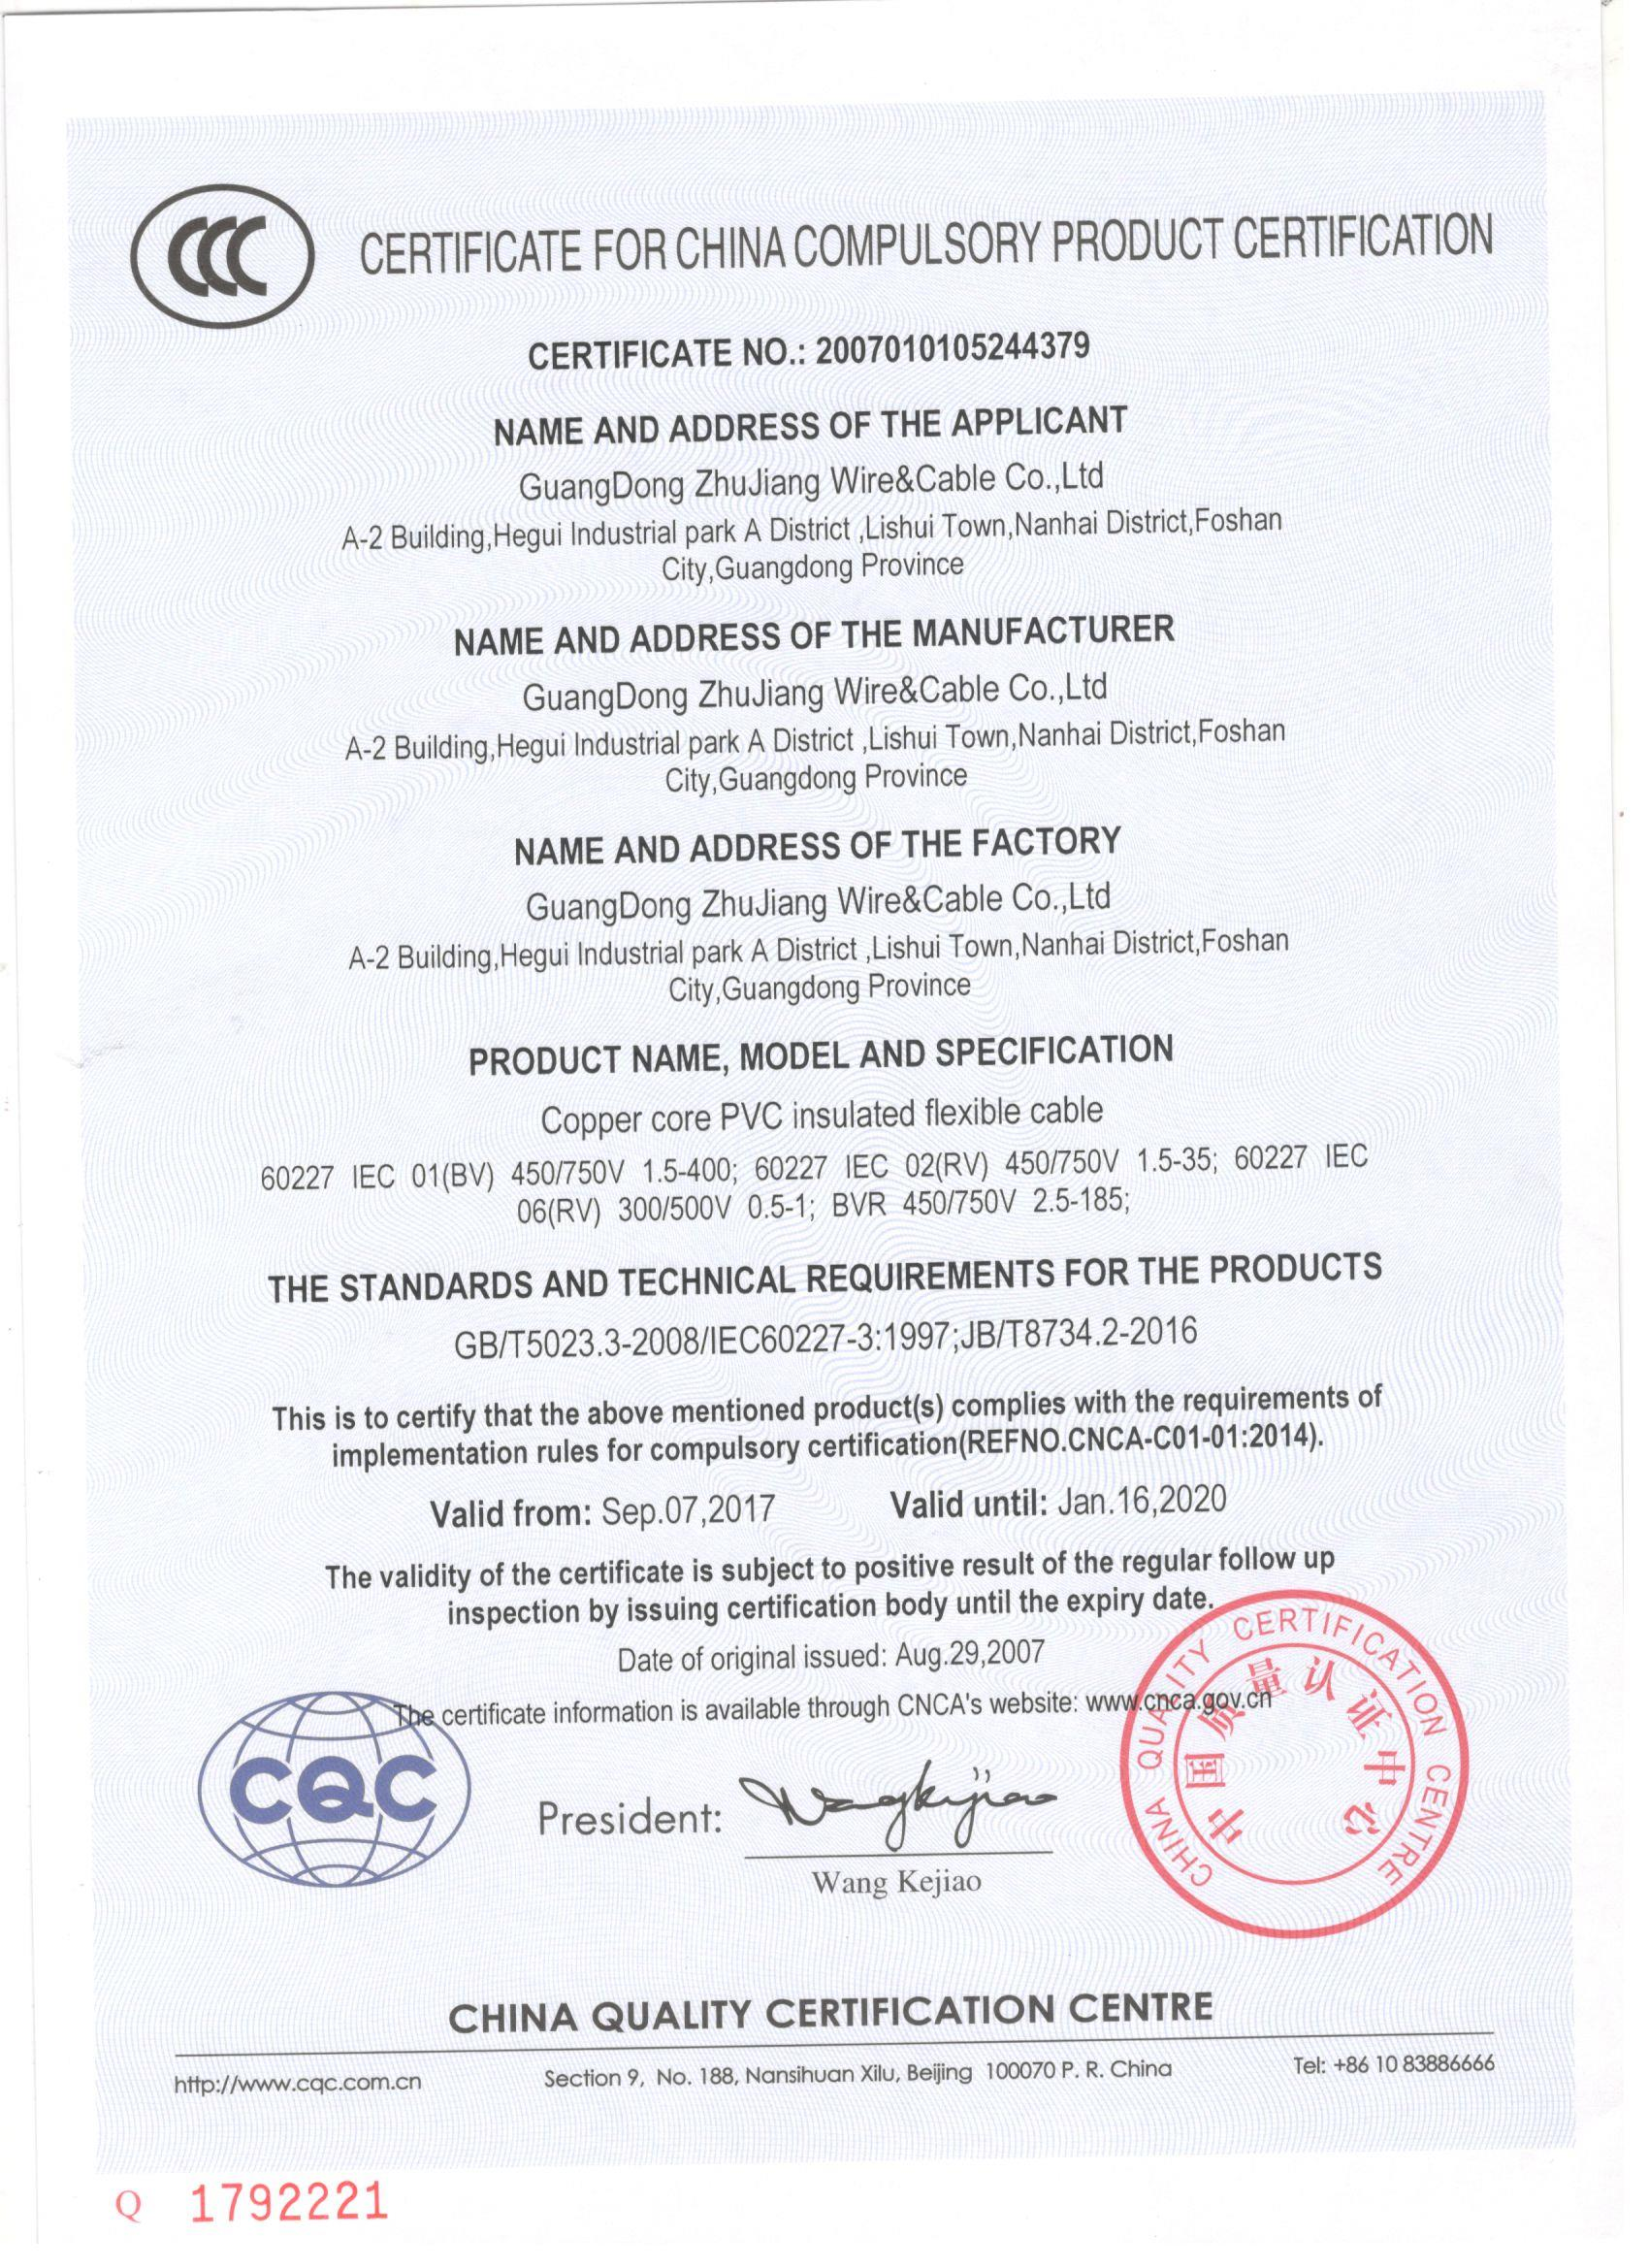 3C National Compulsory Product Certification (379-English)